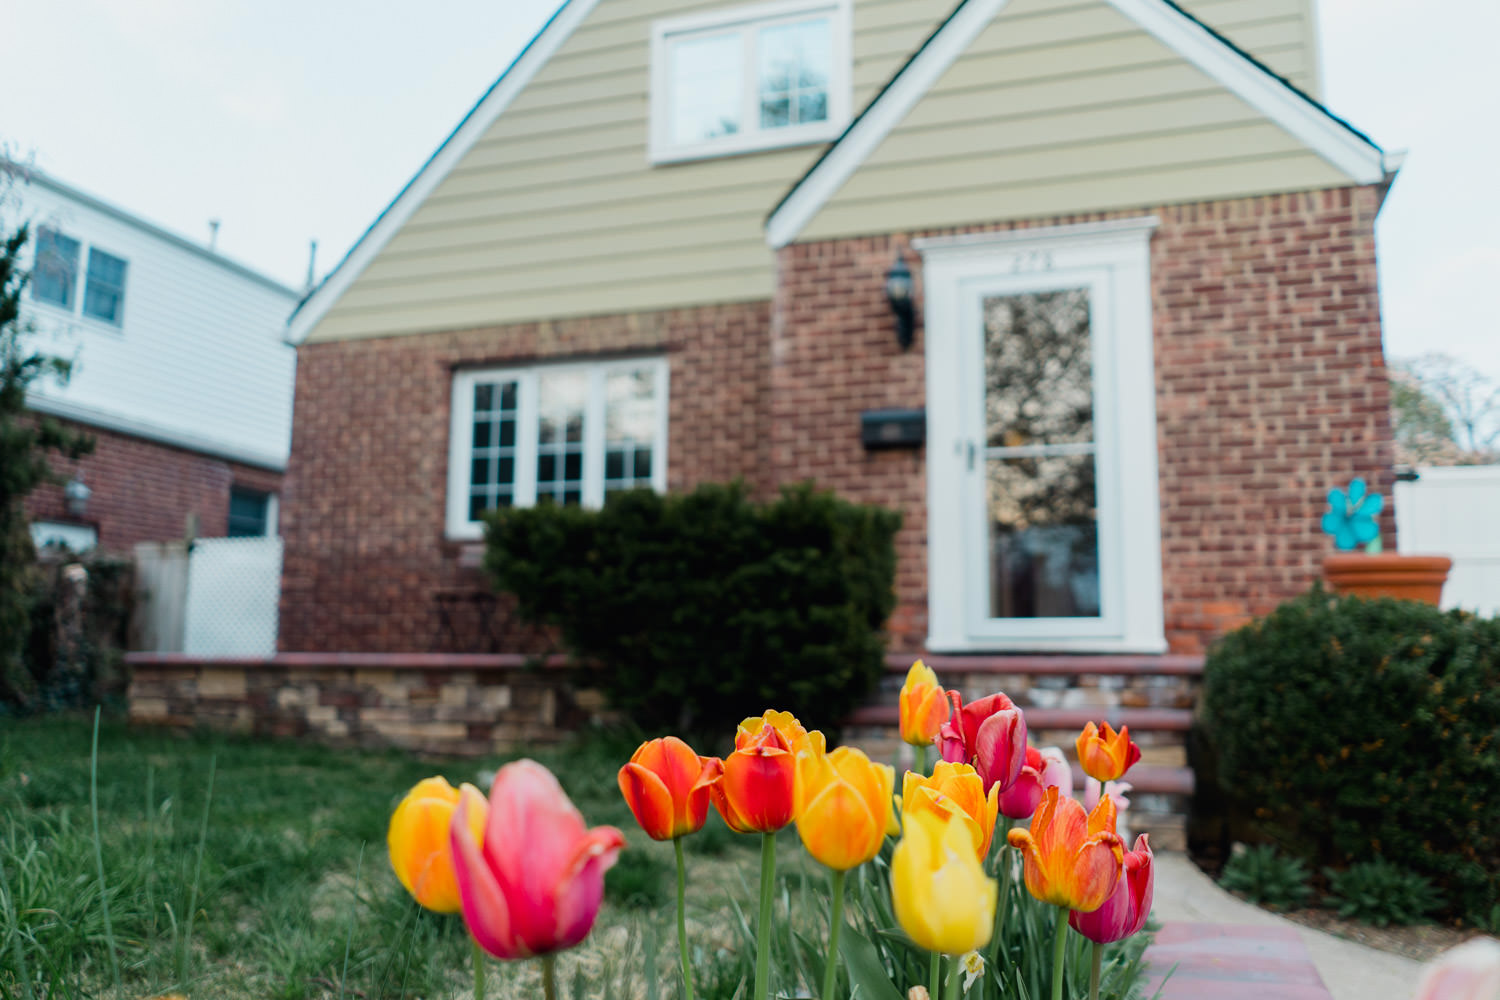 Tulips in a front yard on Long Island.